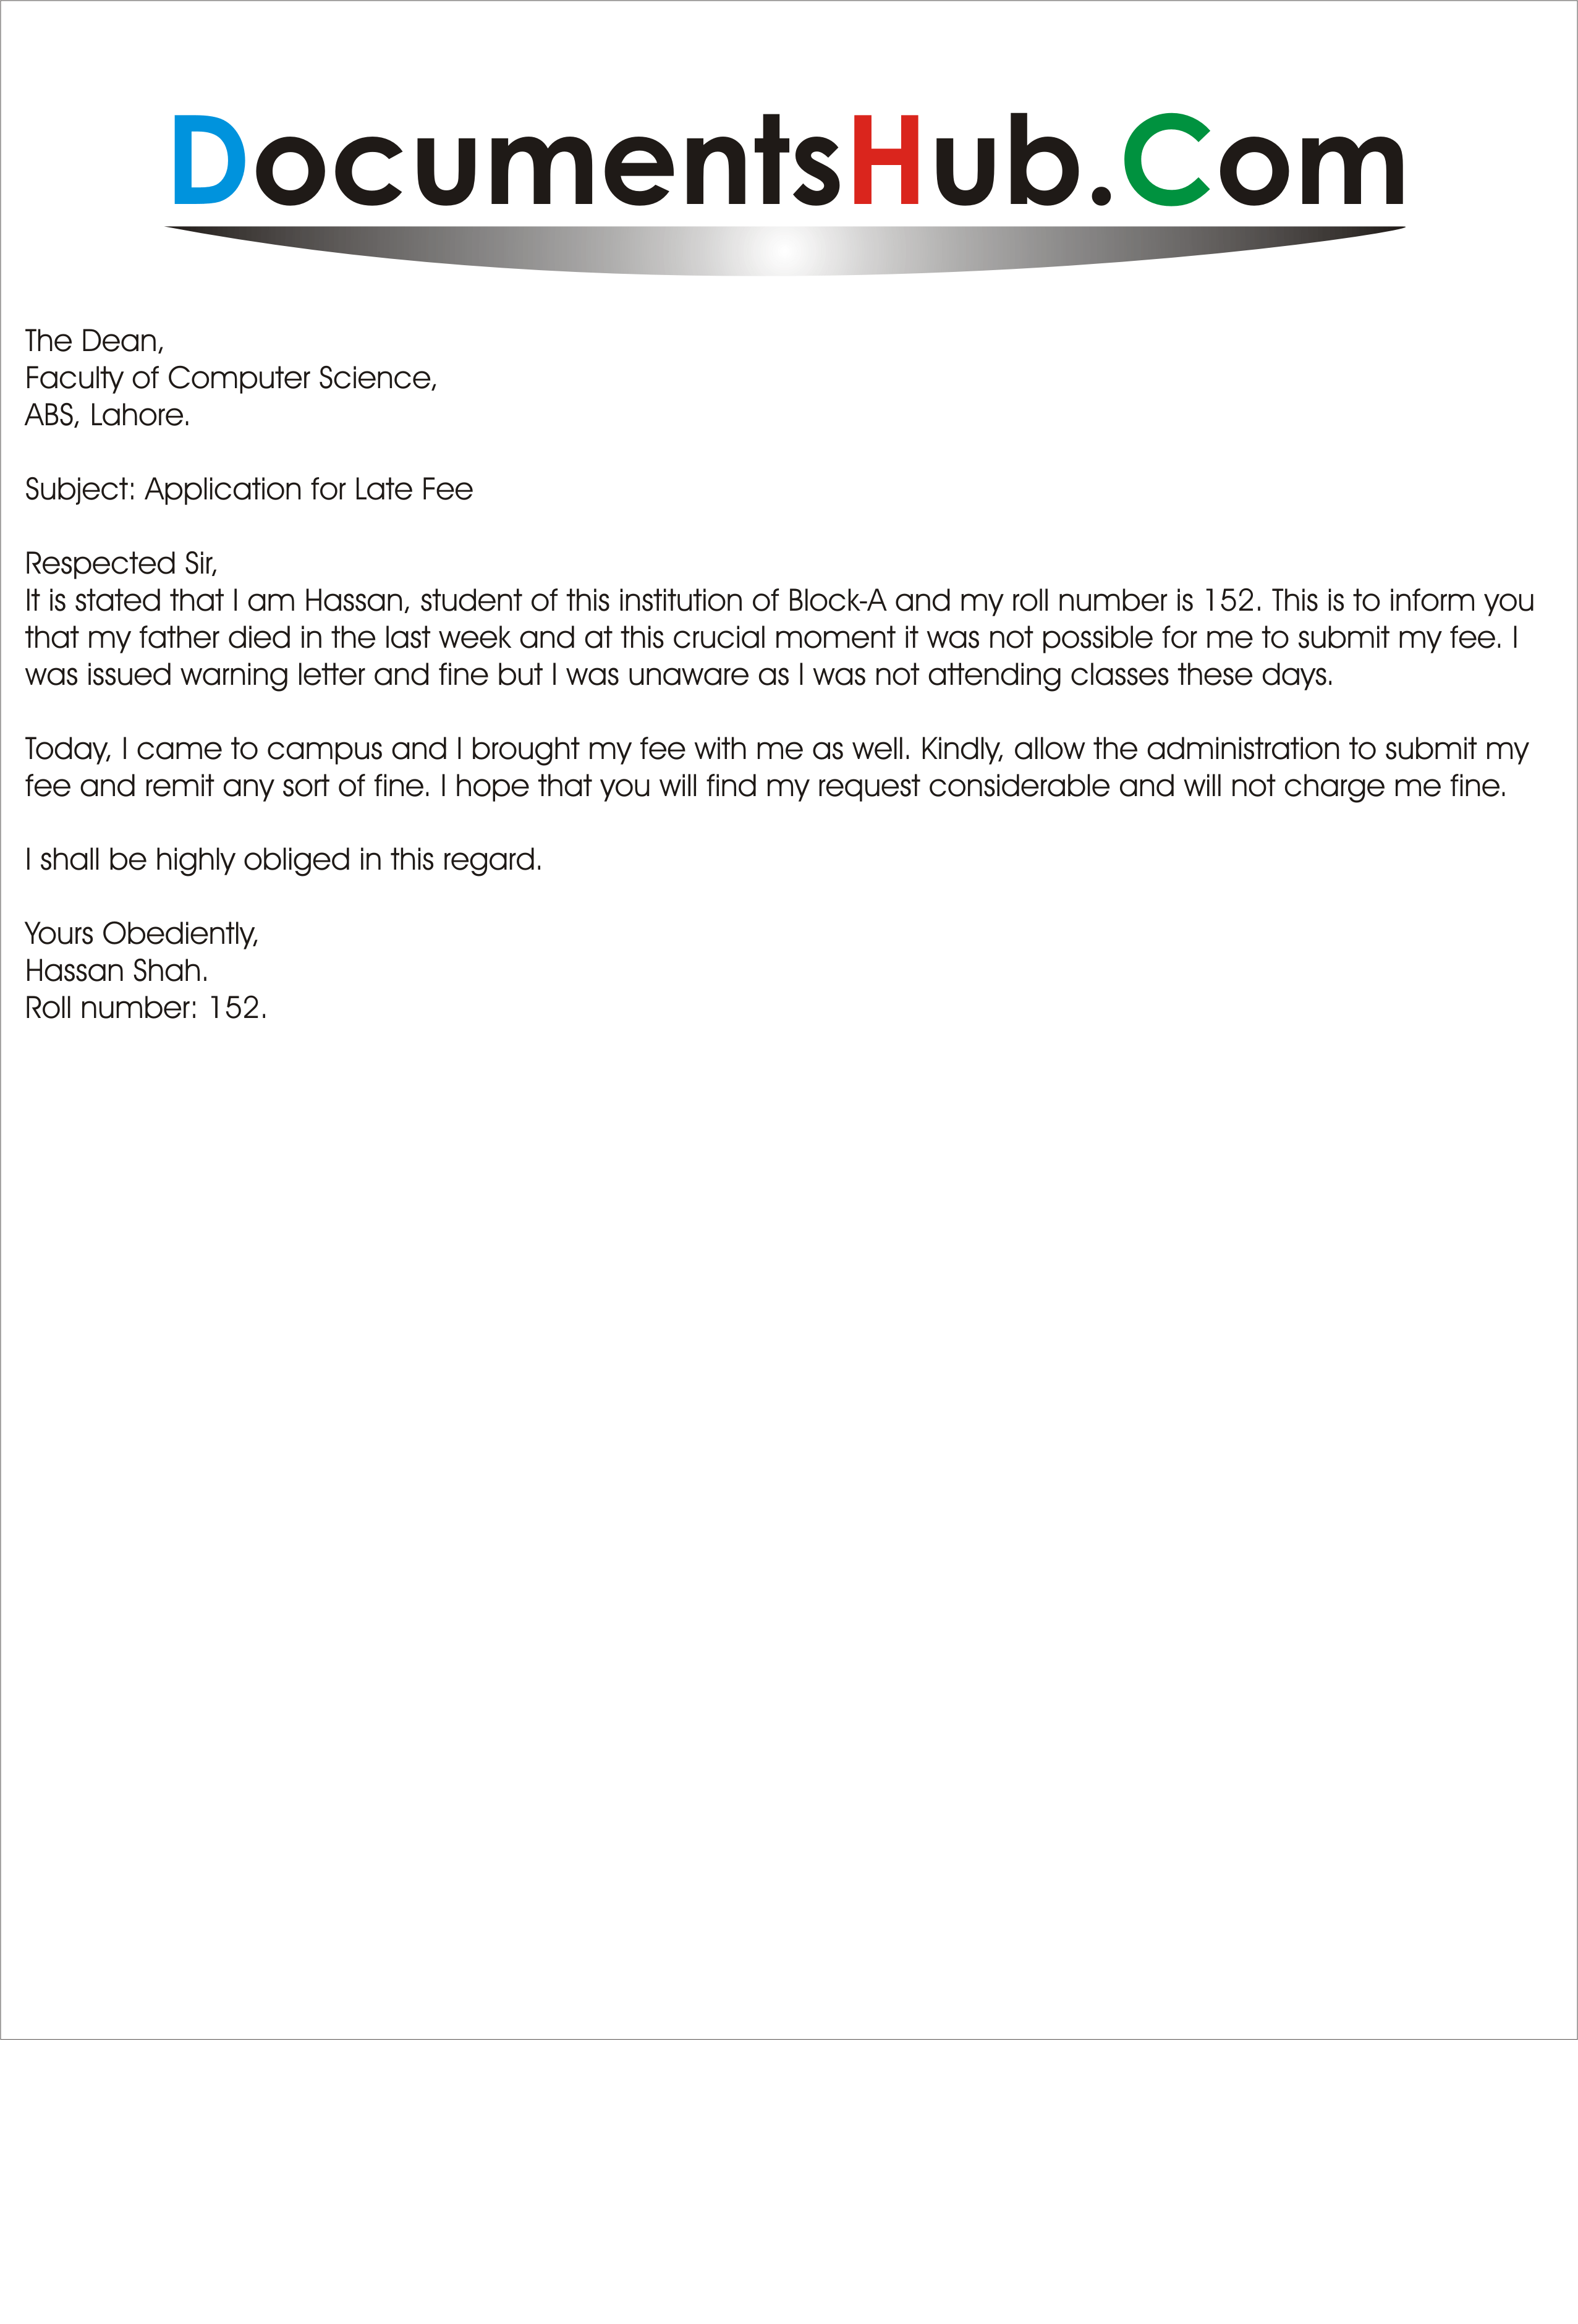 Sample Application for Late Fee Submission